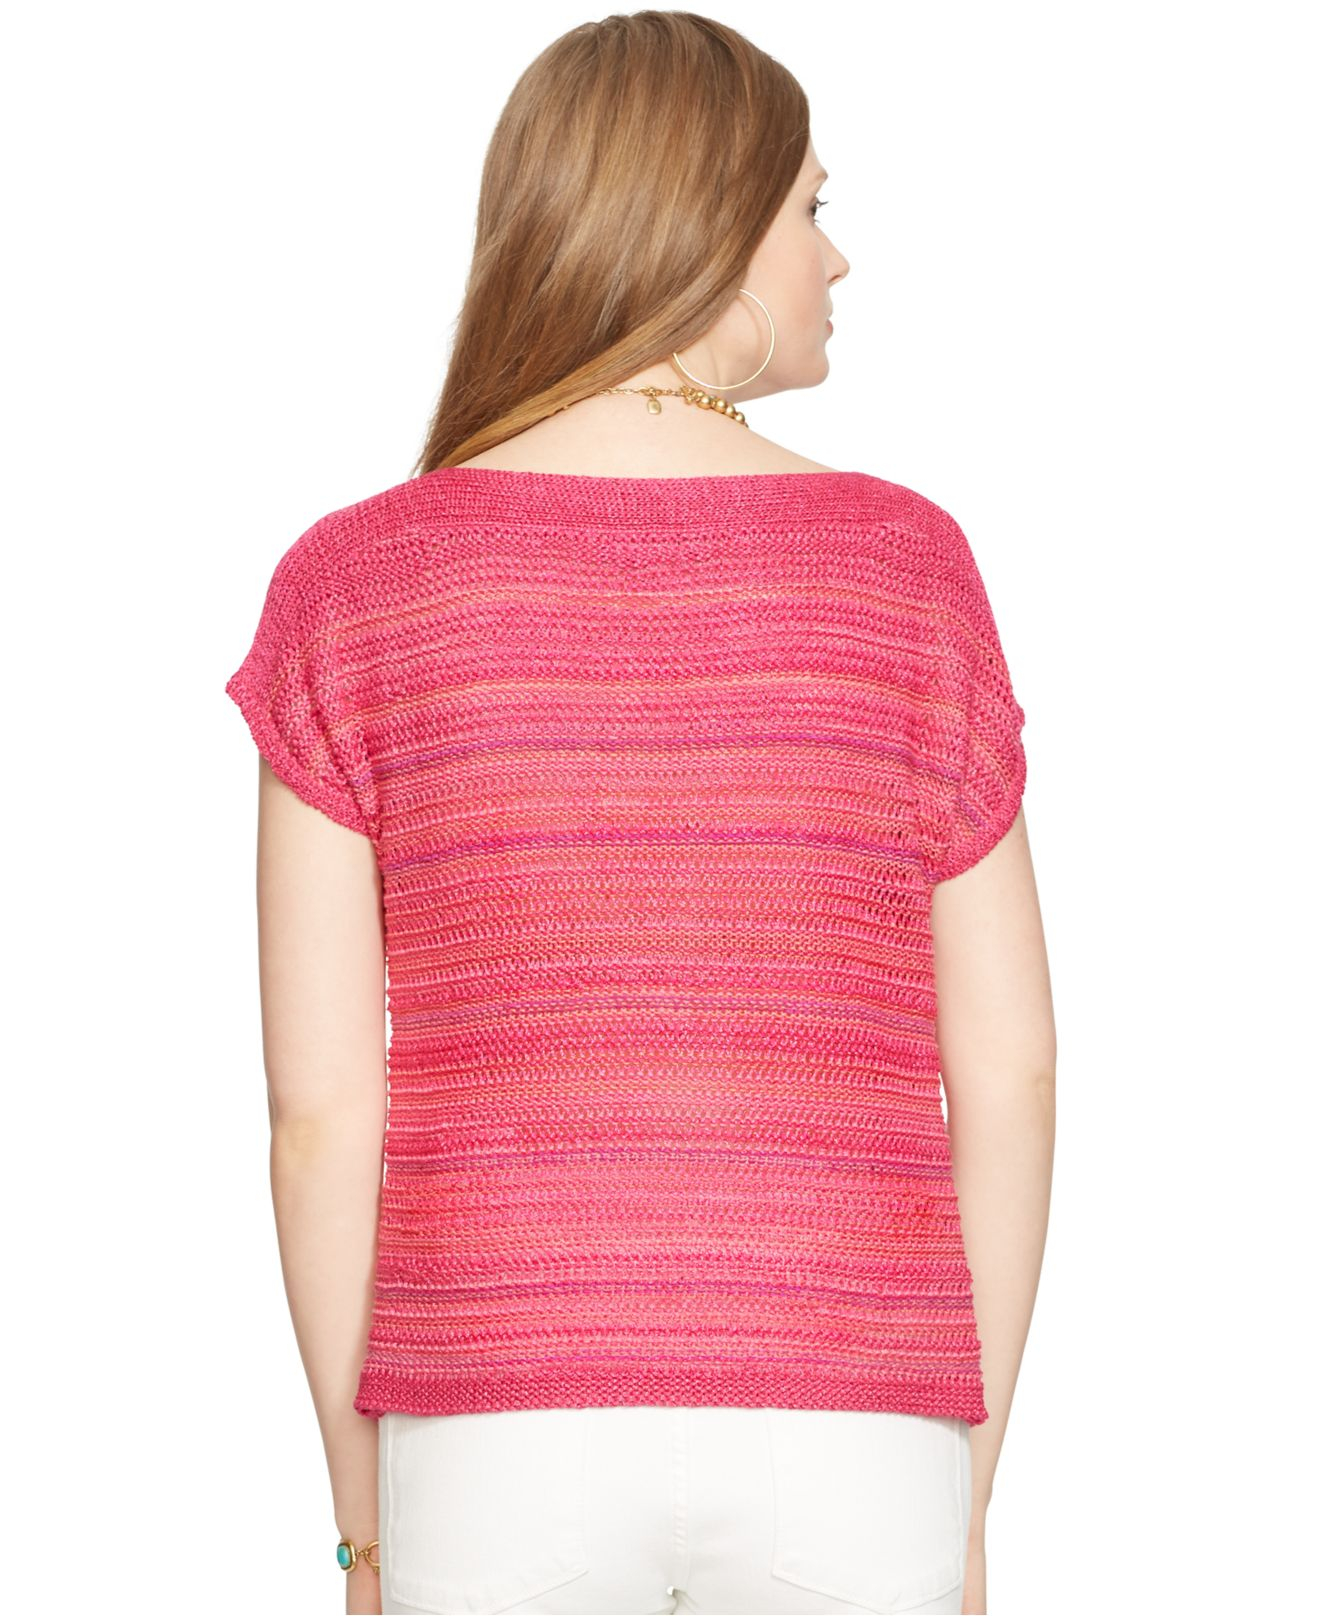 Lauren by ralph lauren Short-Sleeve Marled Sweater in Pink | Lyst